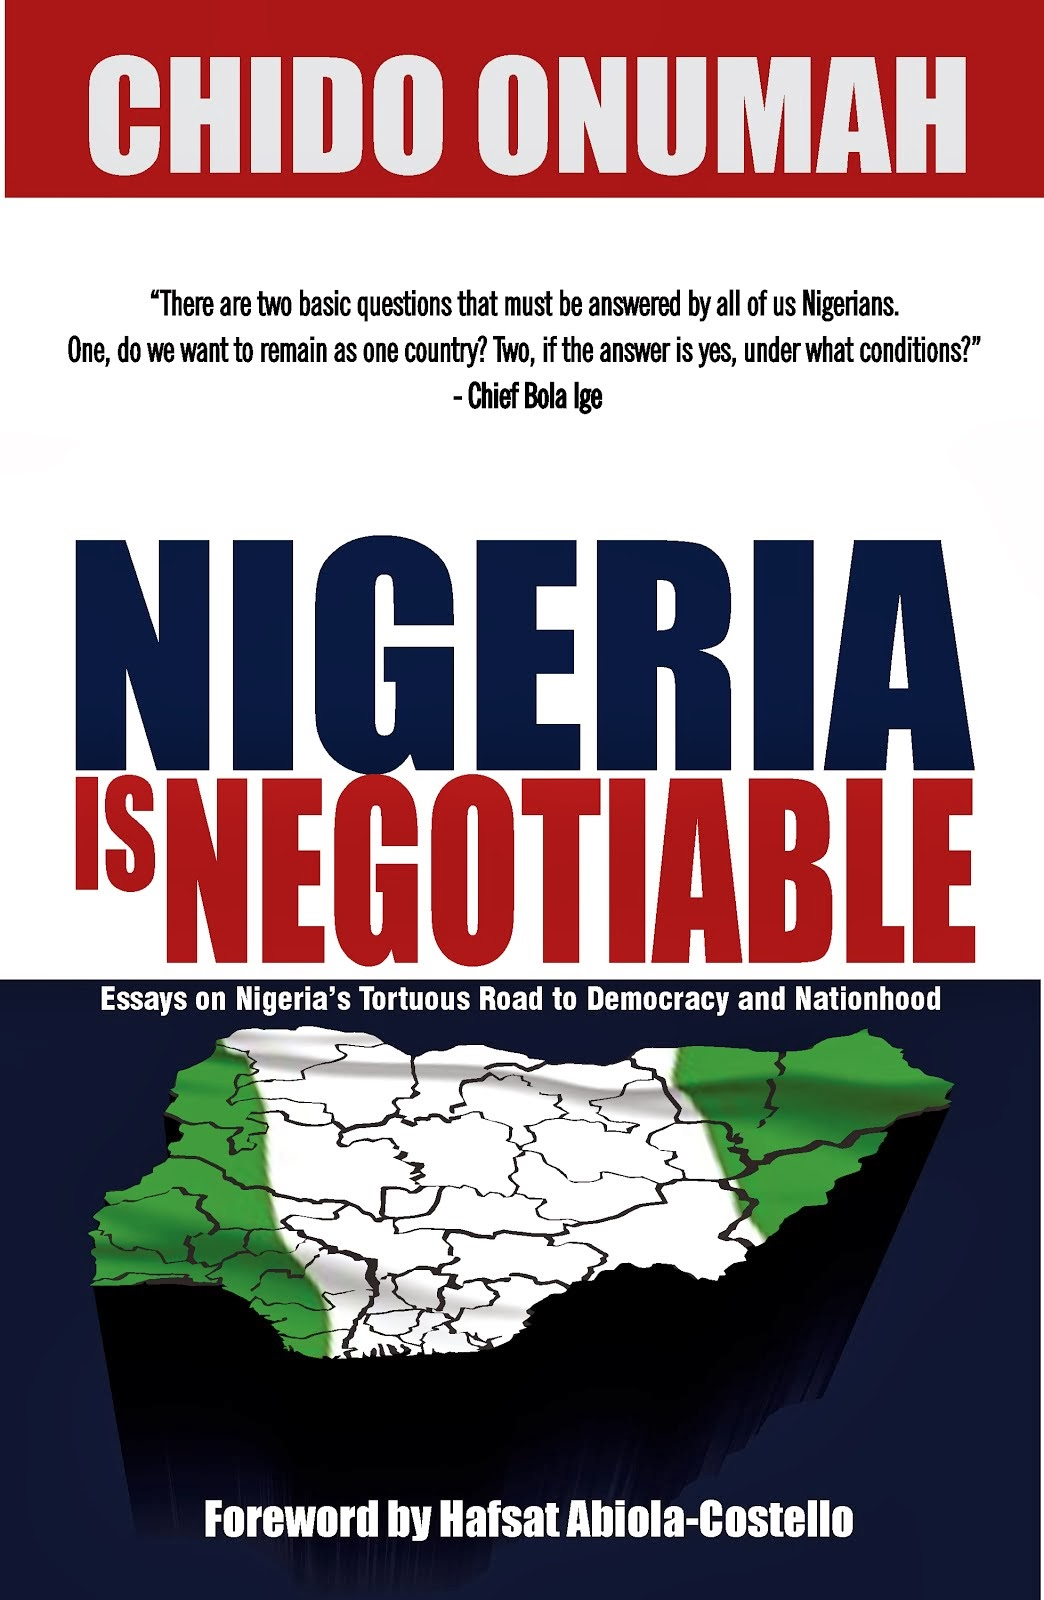 Nigeria is Negotiable